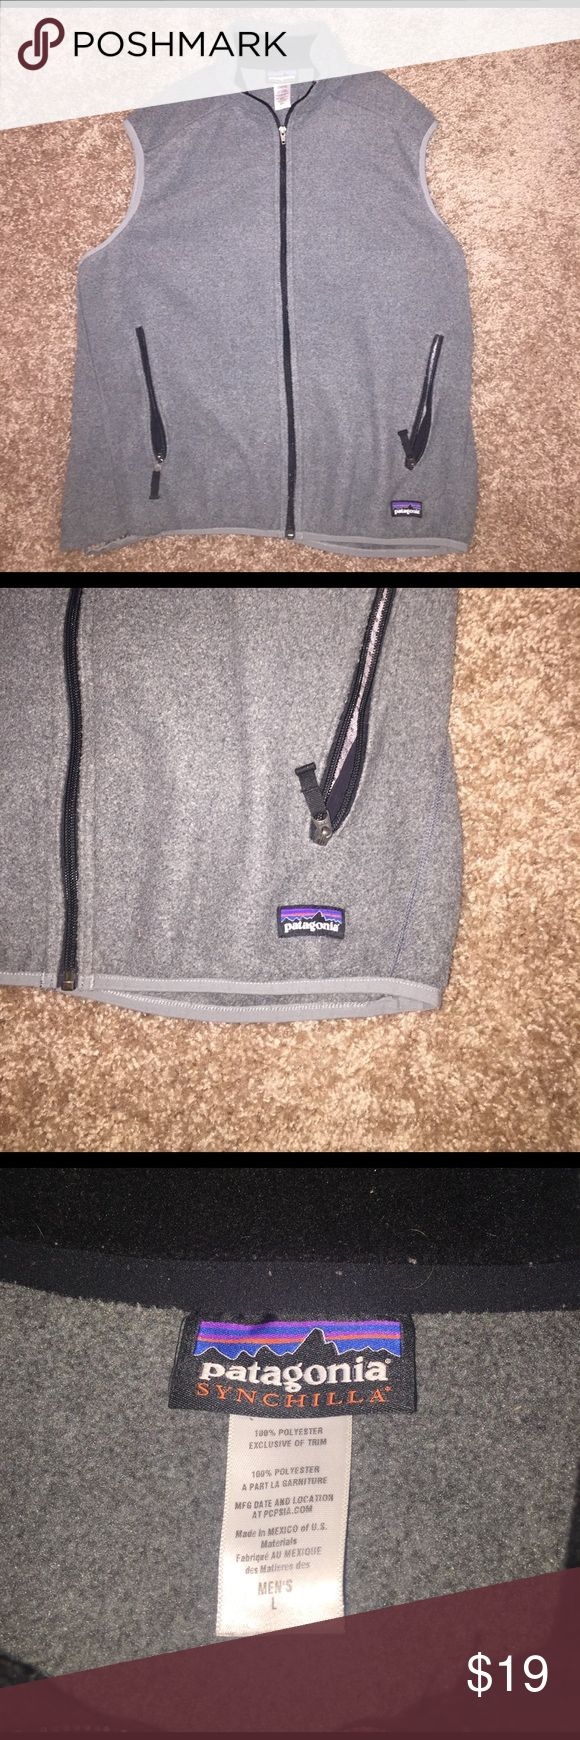 Men's Patagonia  Fleece Vest (L) Men's Grey Patagonia Fleece Vest. Size Large. In good shape except bottom right stitching has came apart and can easily be fixed. Even if doesn't get fixed, lose stitching is barely noticeable when being worn. Patagonia Jackets & Coats Vests